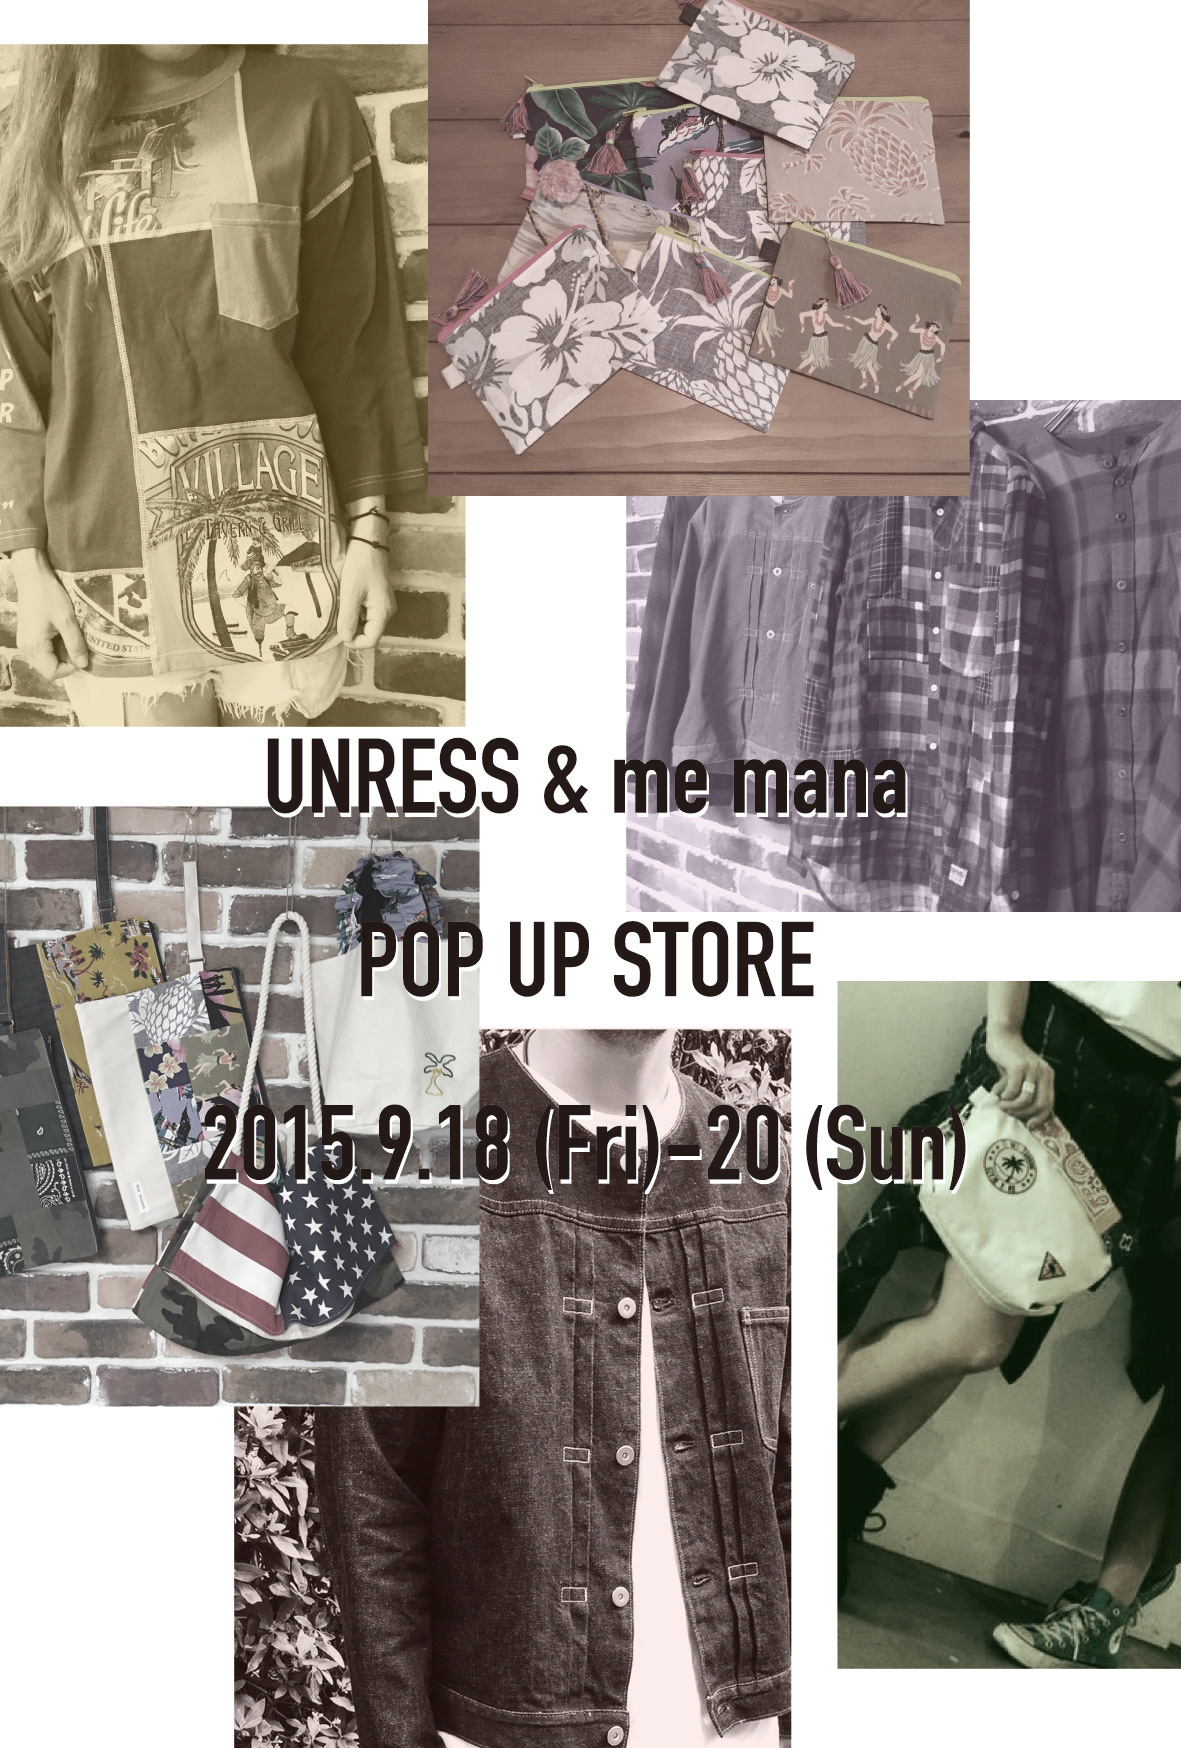 UNRESS & me mana POP UP STORE